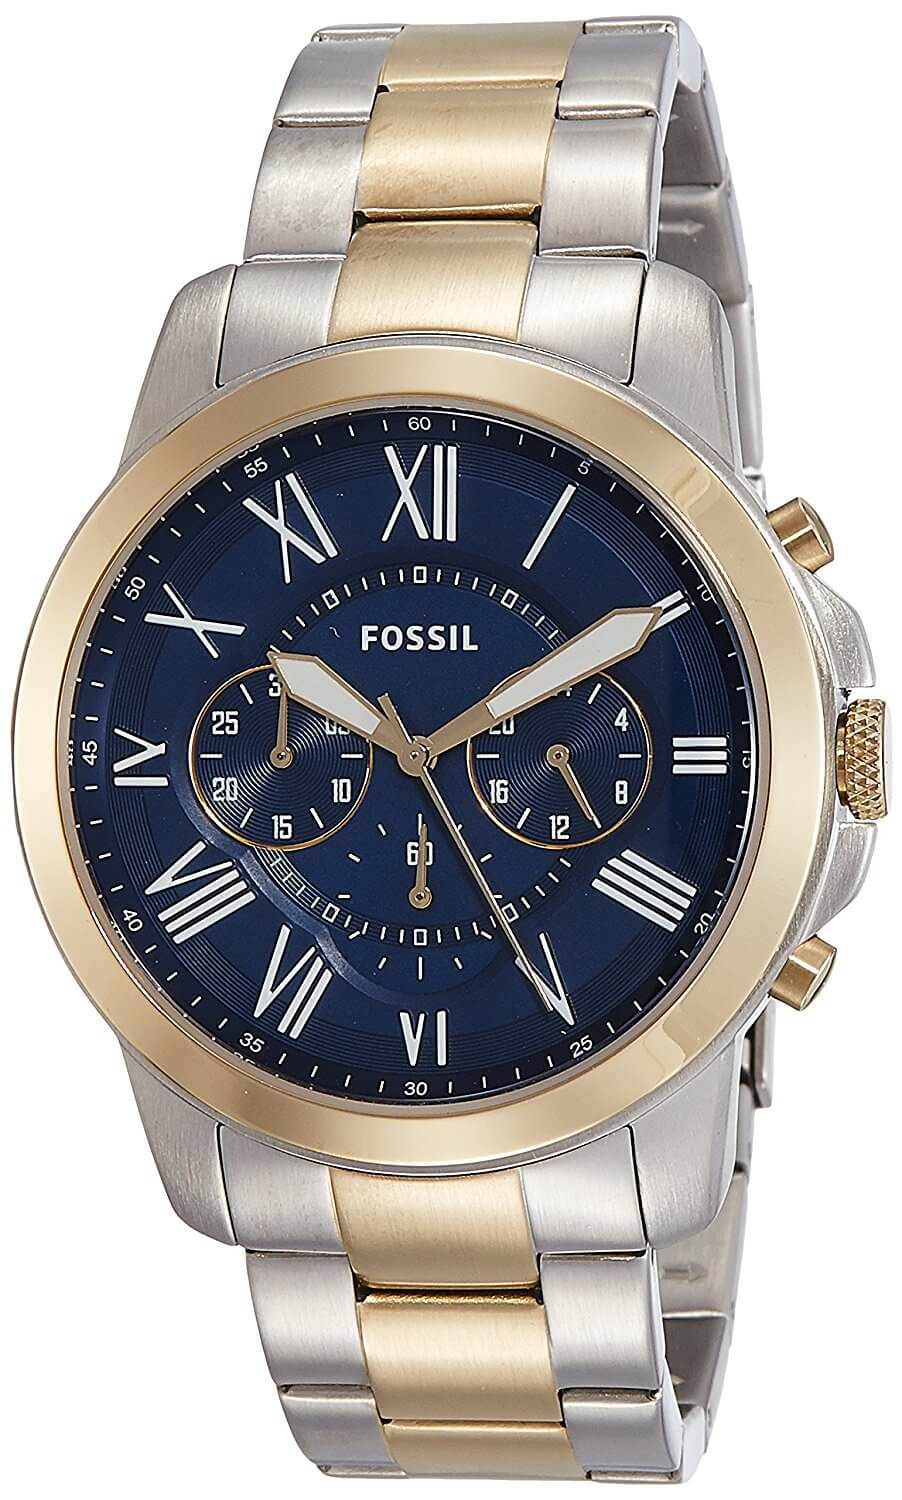 Fossil Watches For Men – Up to 40% Off